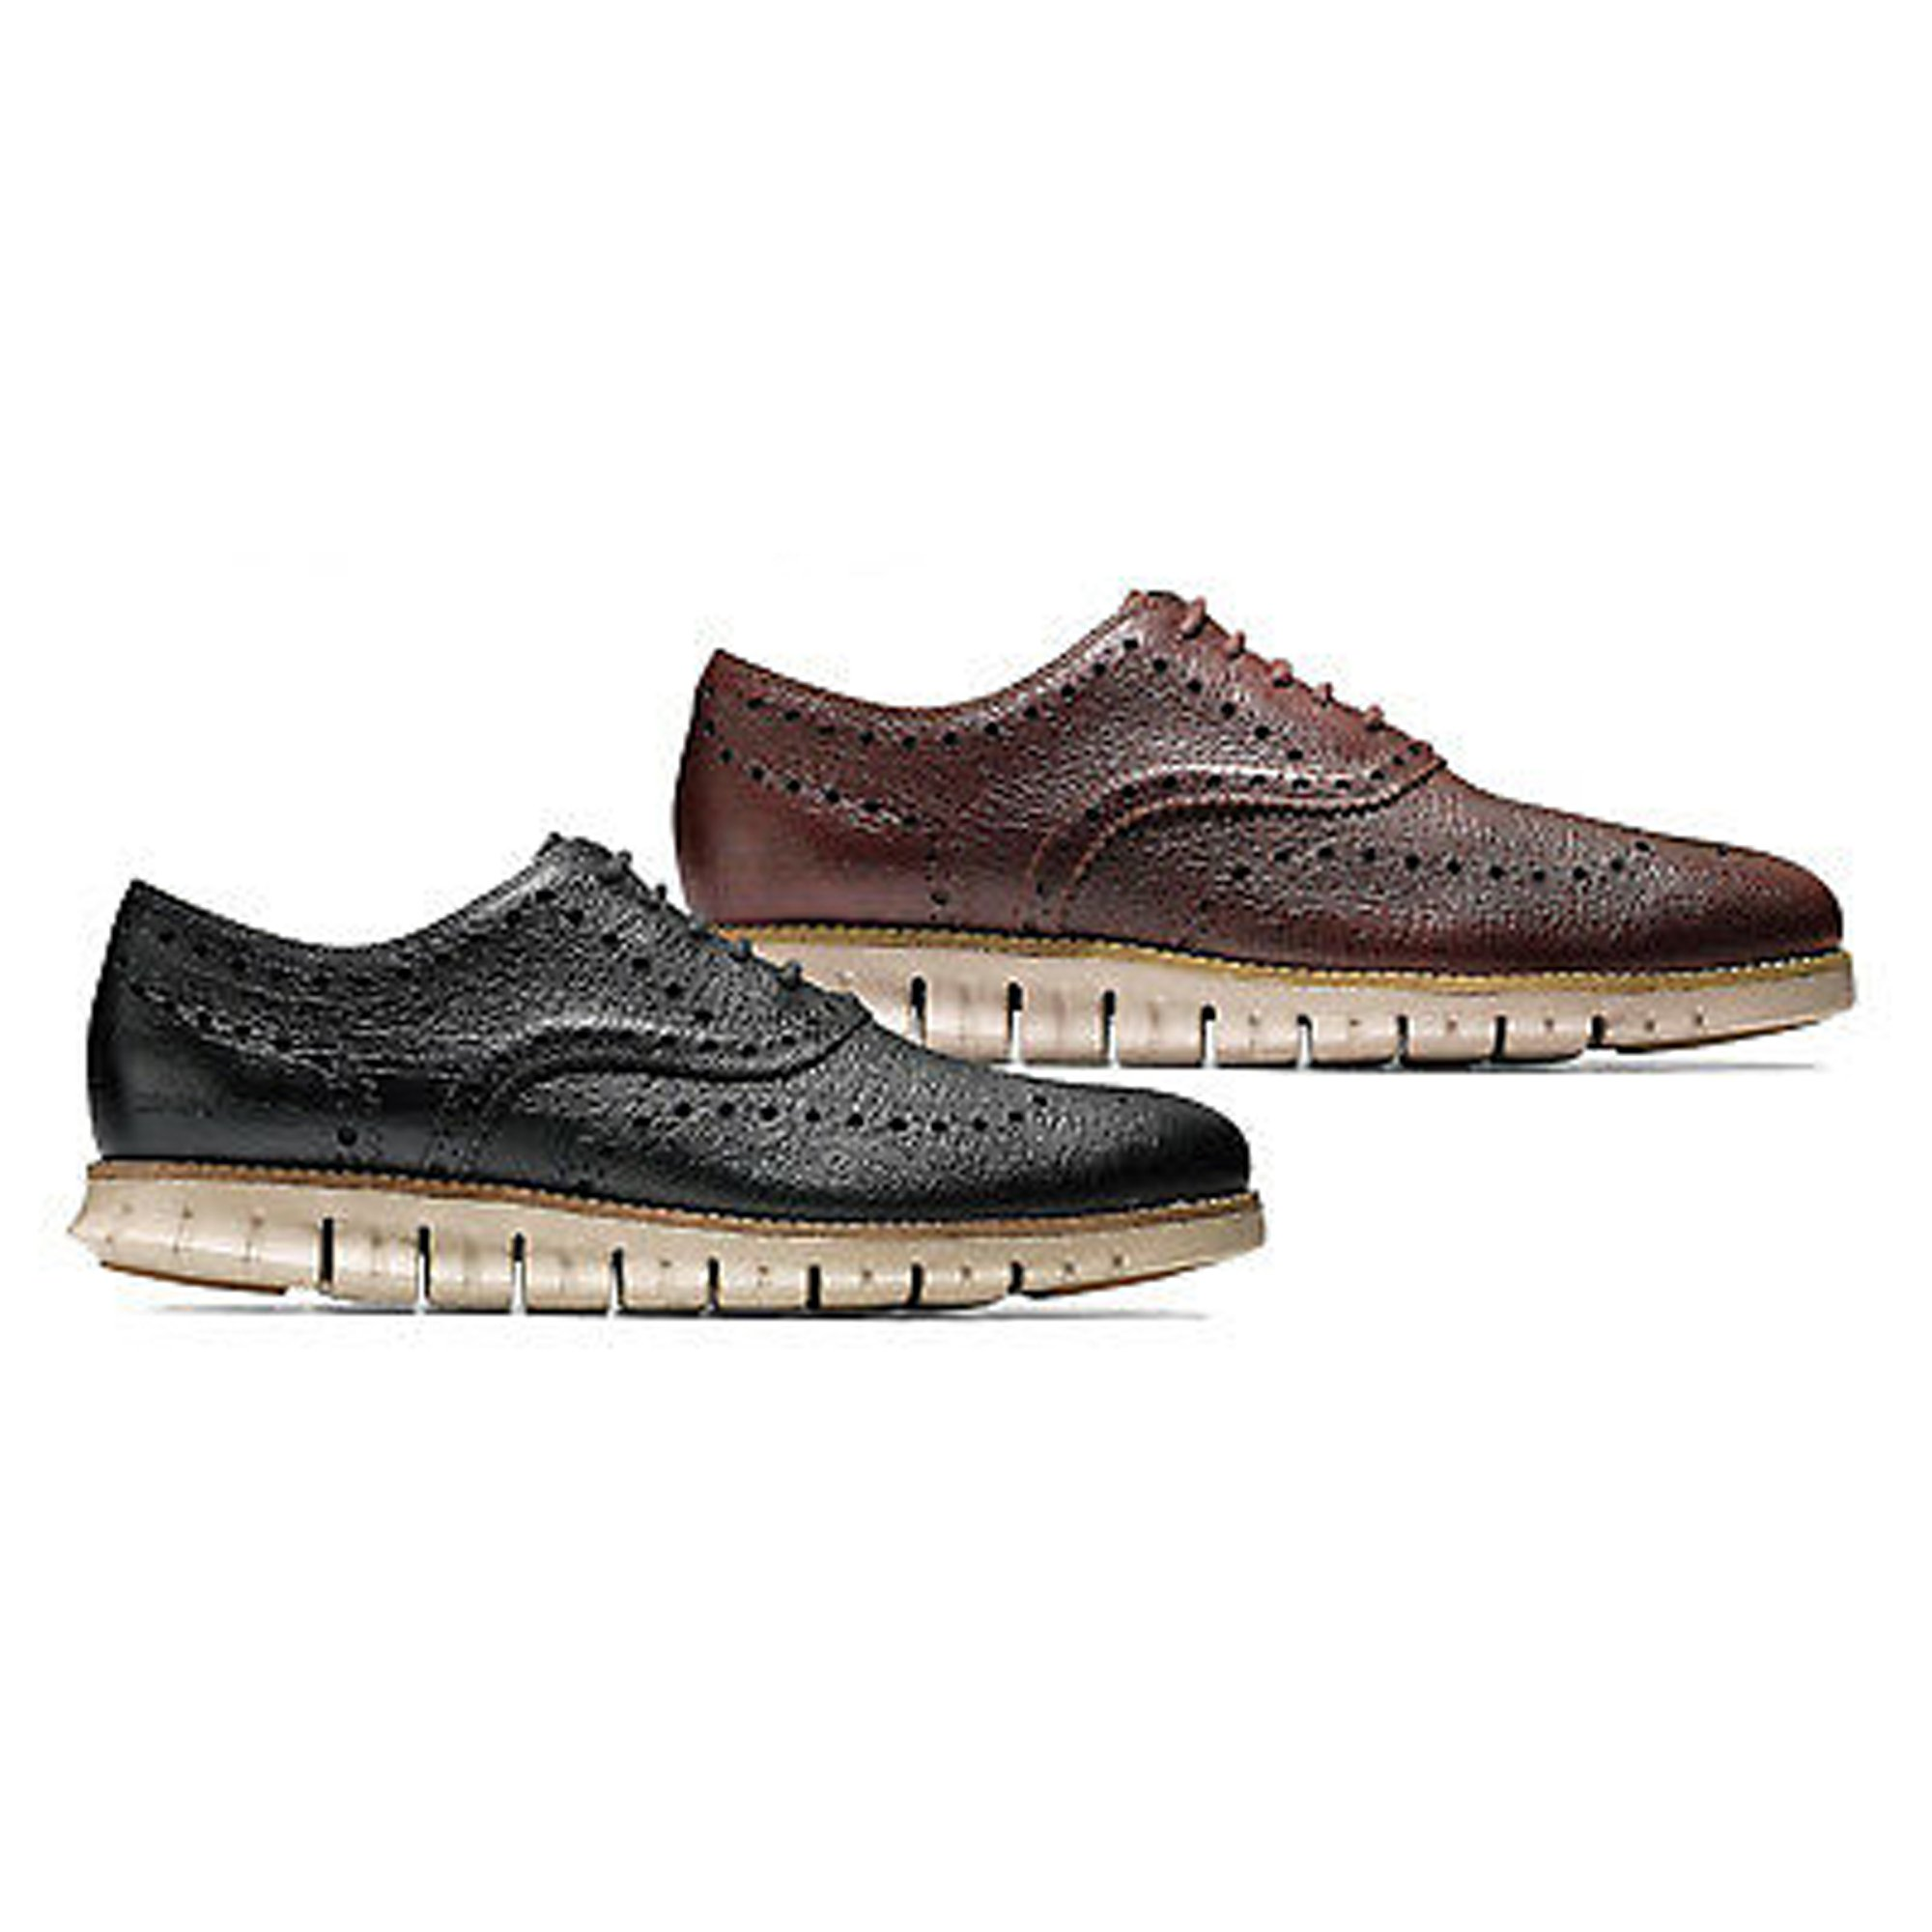 "Gents Footwear (""James"")- Product- GC 264Gents Footwear (""James"")- Product- GC 264"